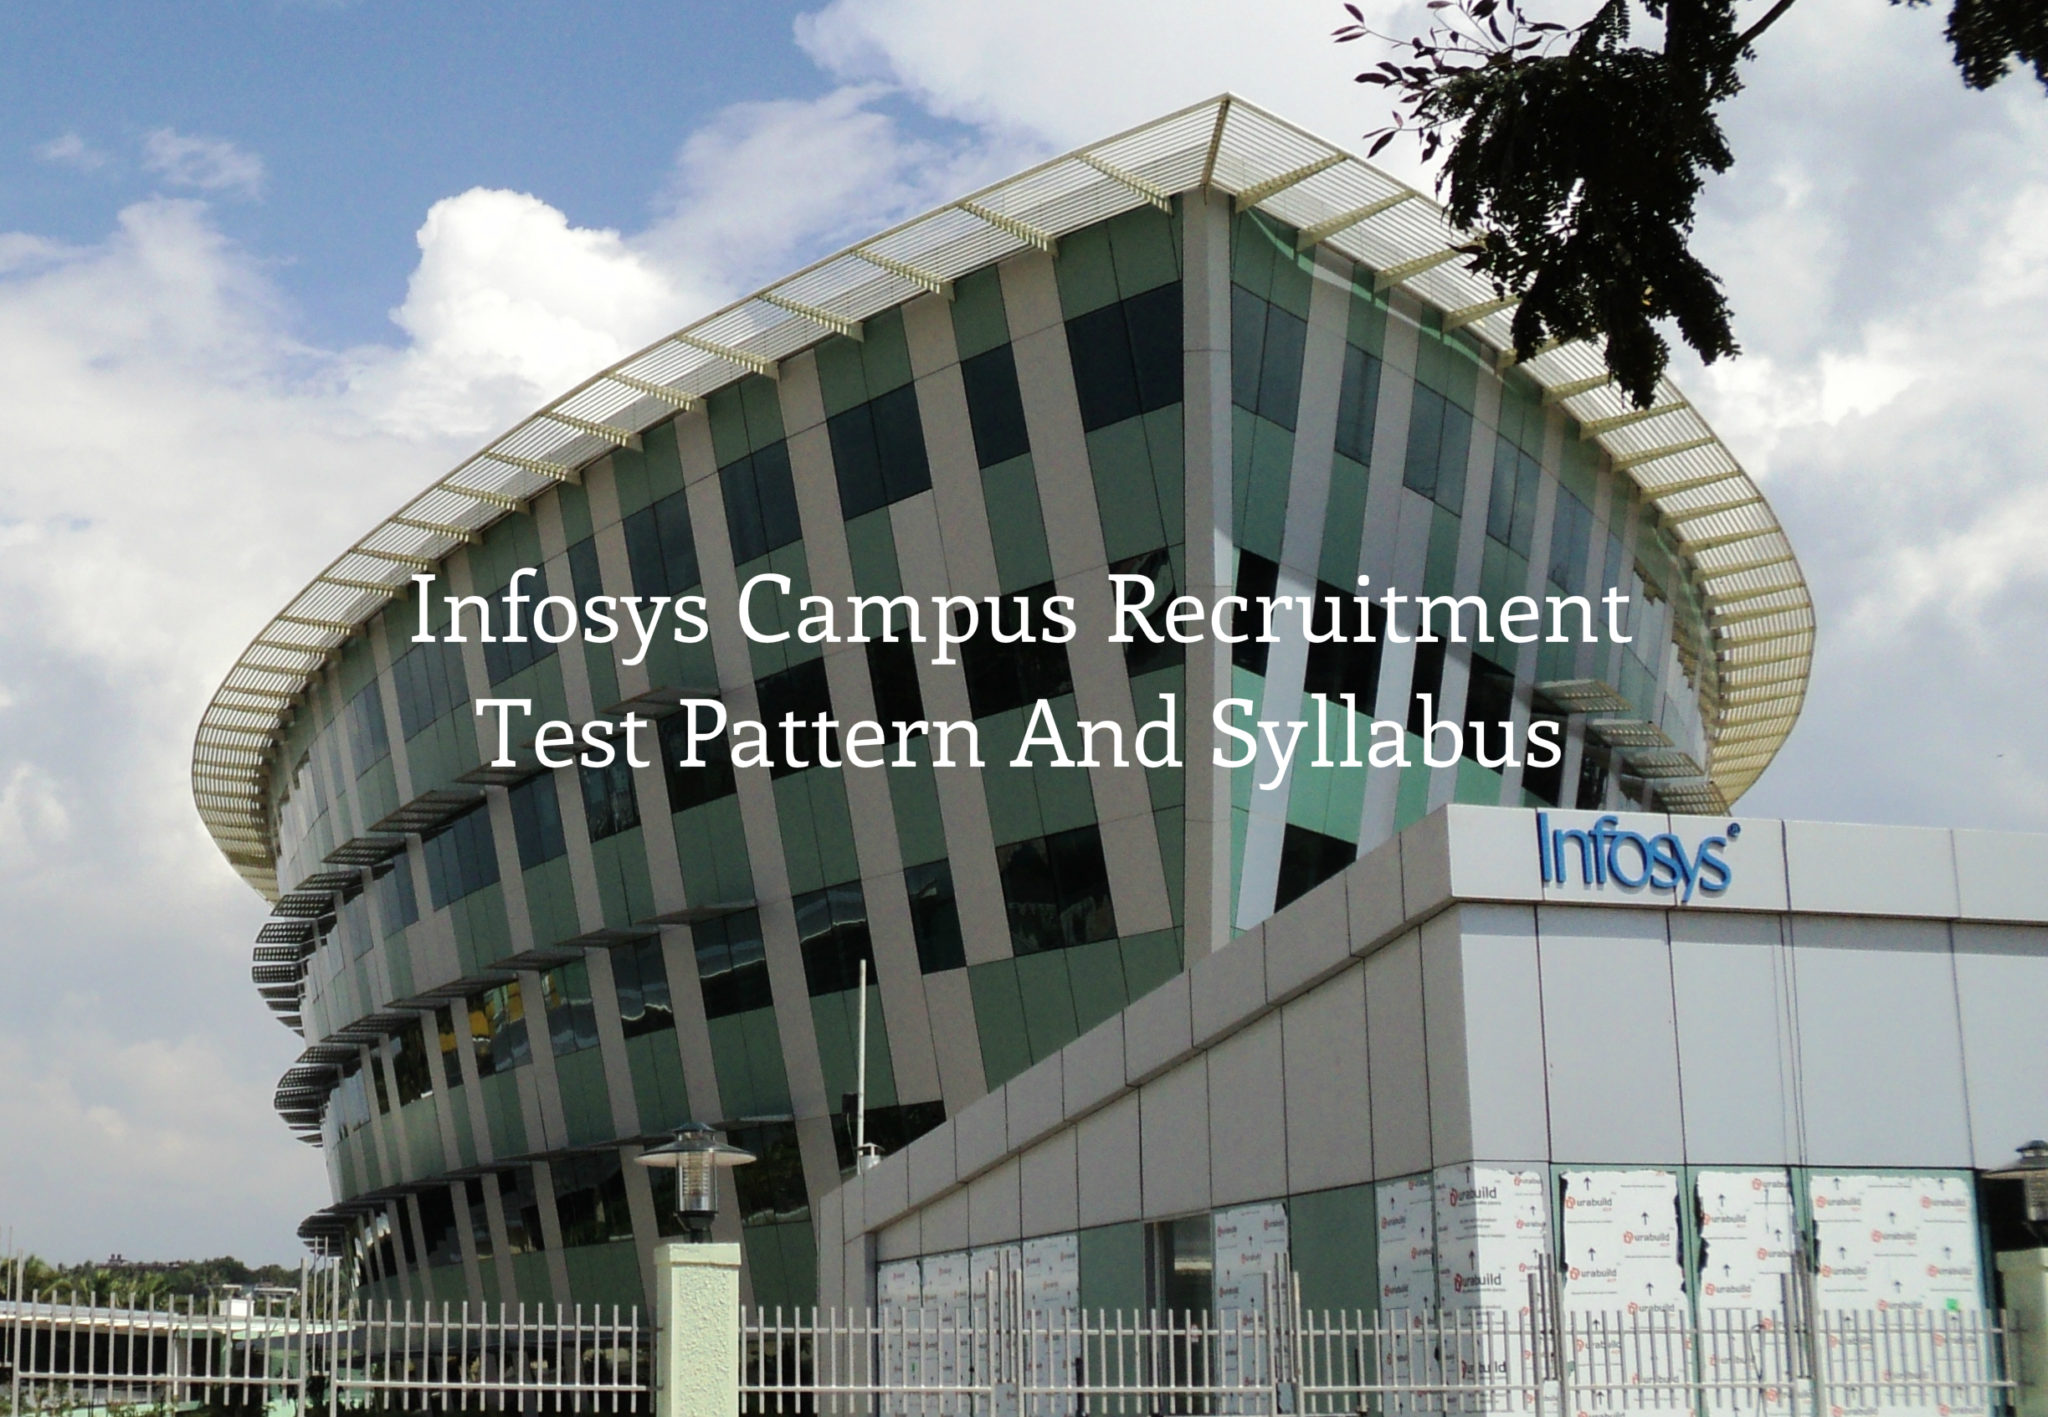 Infosys Campus Recruitment